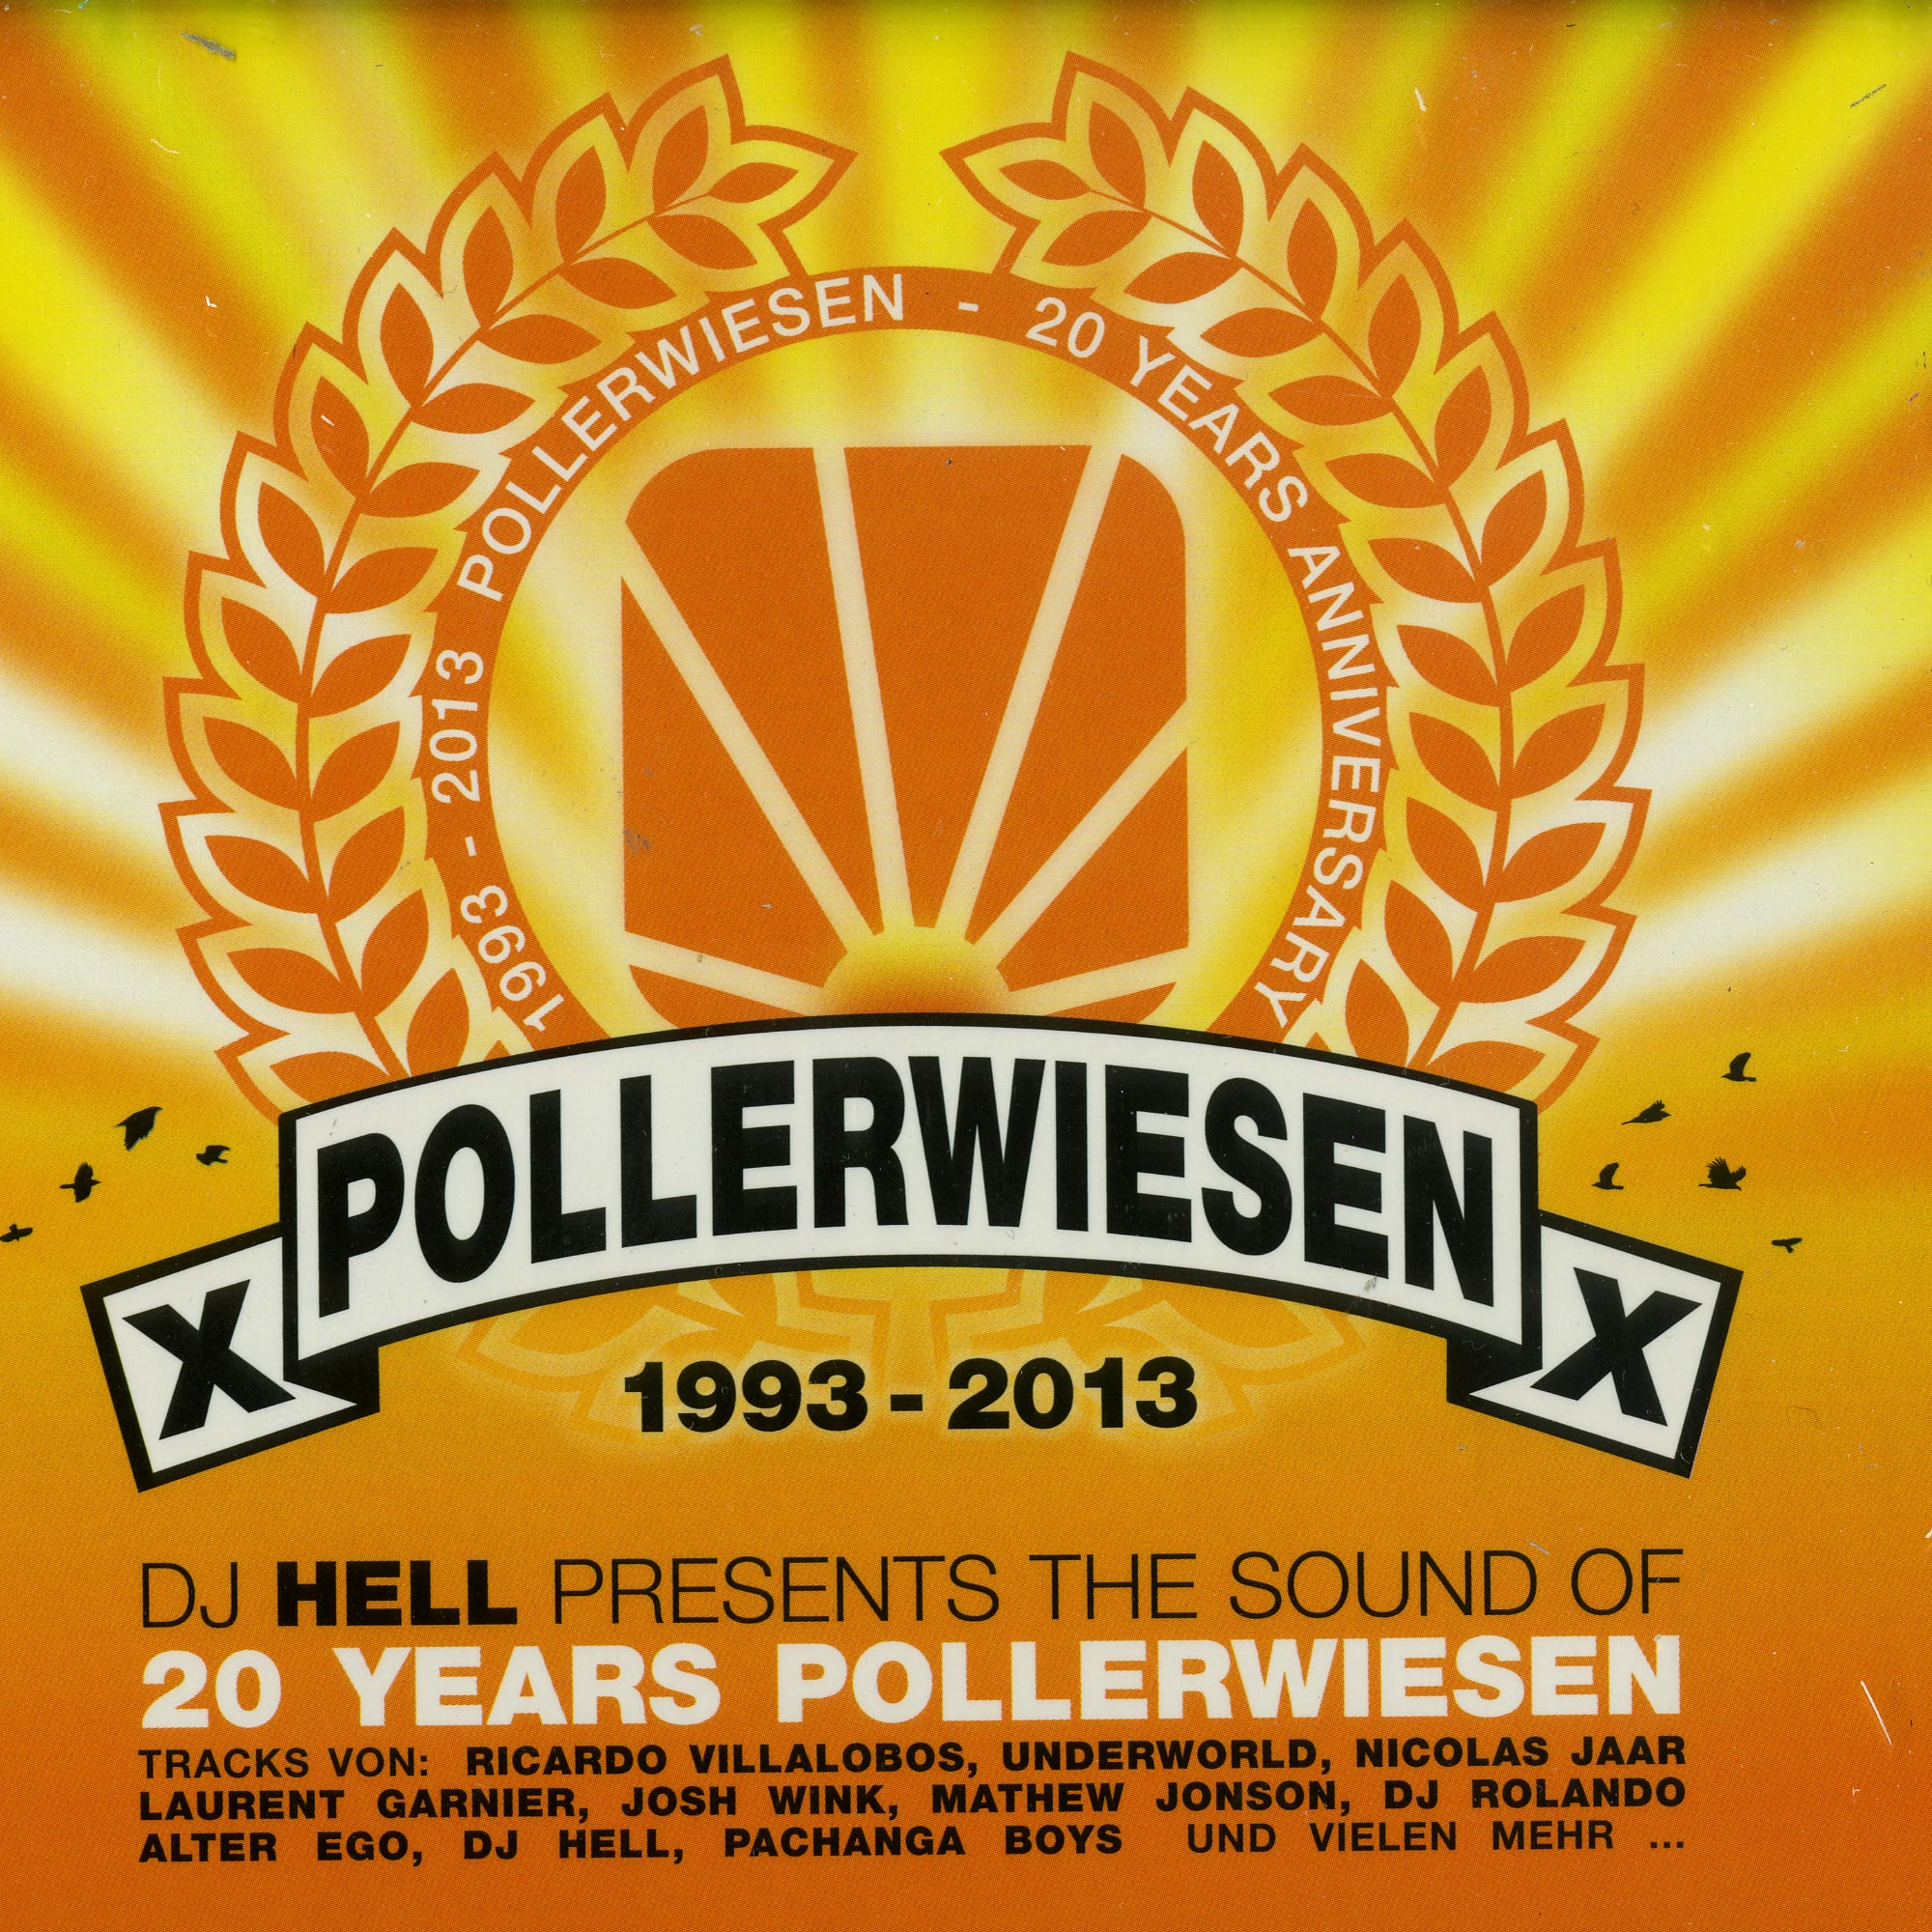 DJ Hell pres - 20 YEARS OF POLLERWIESEN SOUND